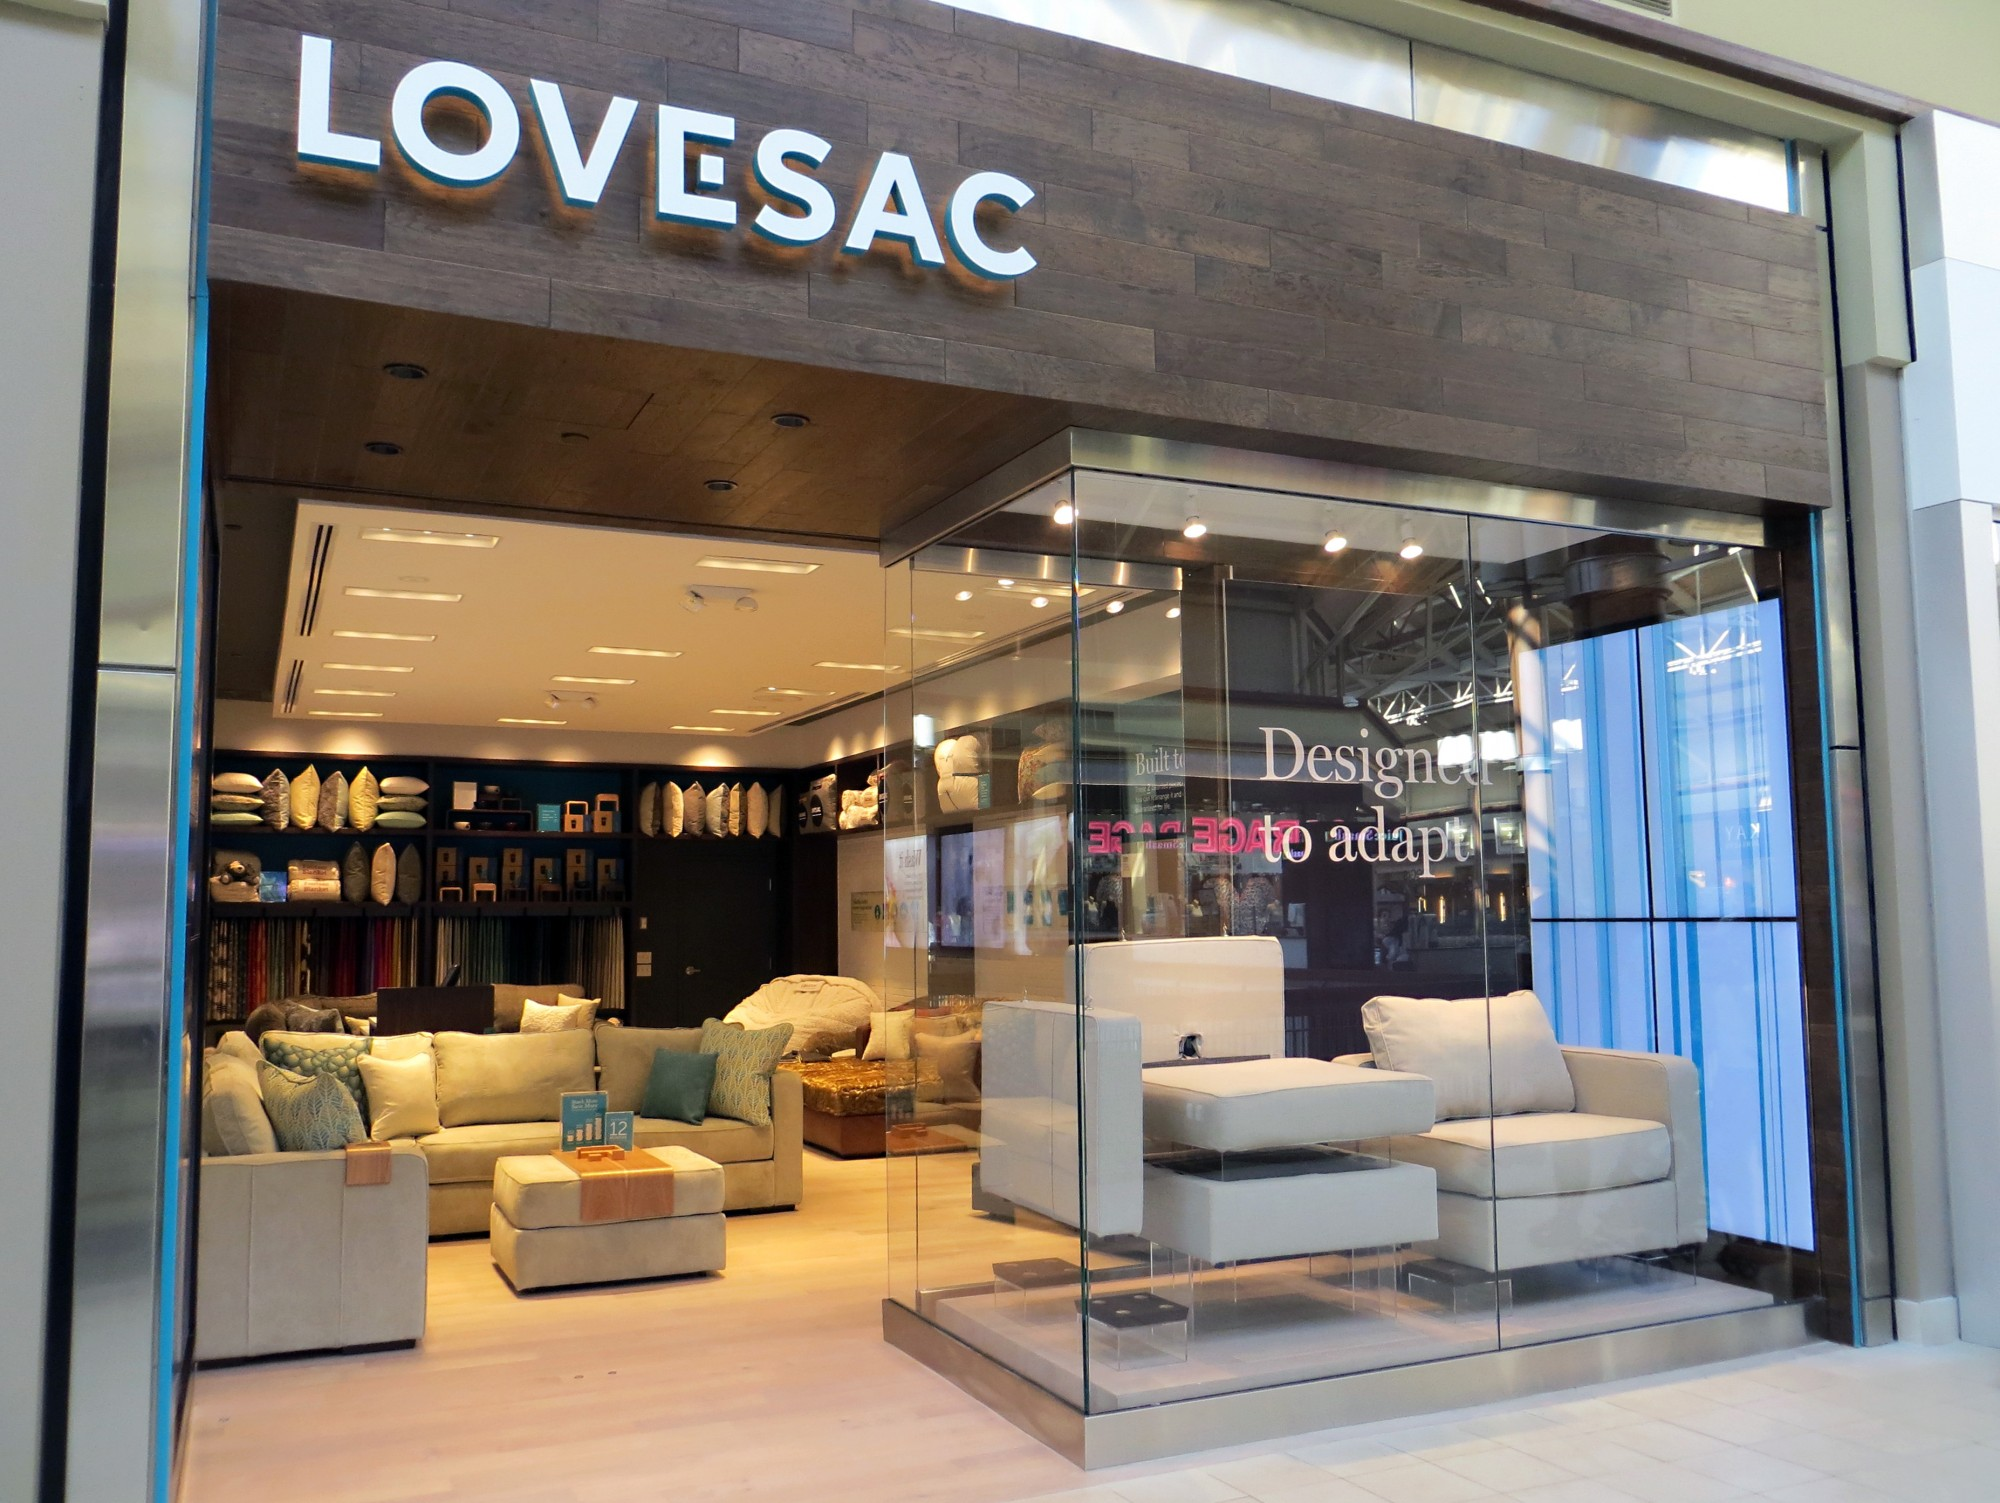 Lovesac Unveils New Generation Store Design Concept! - The Grayson Company